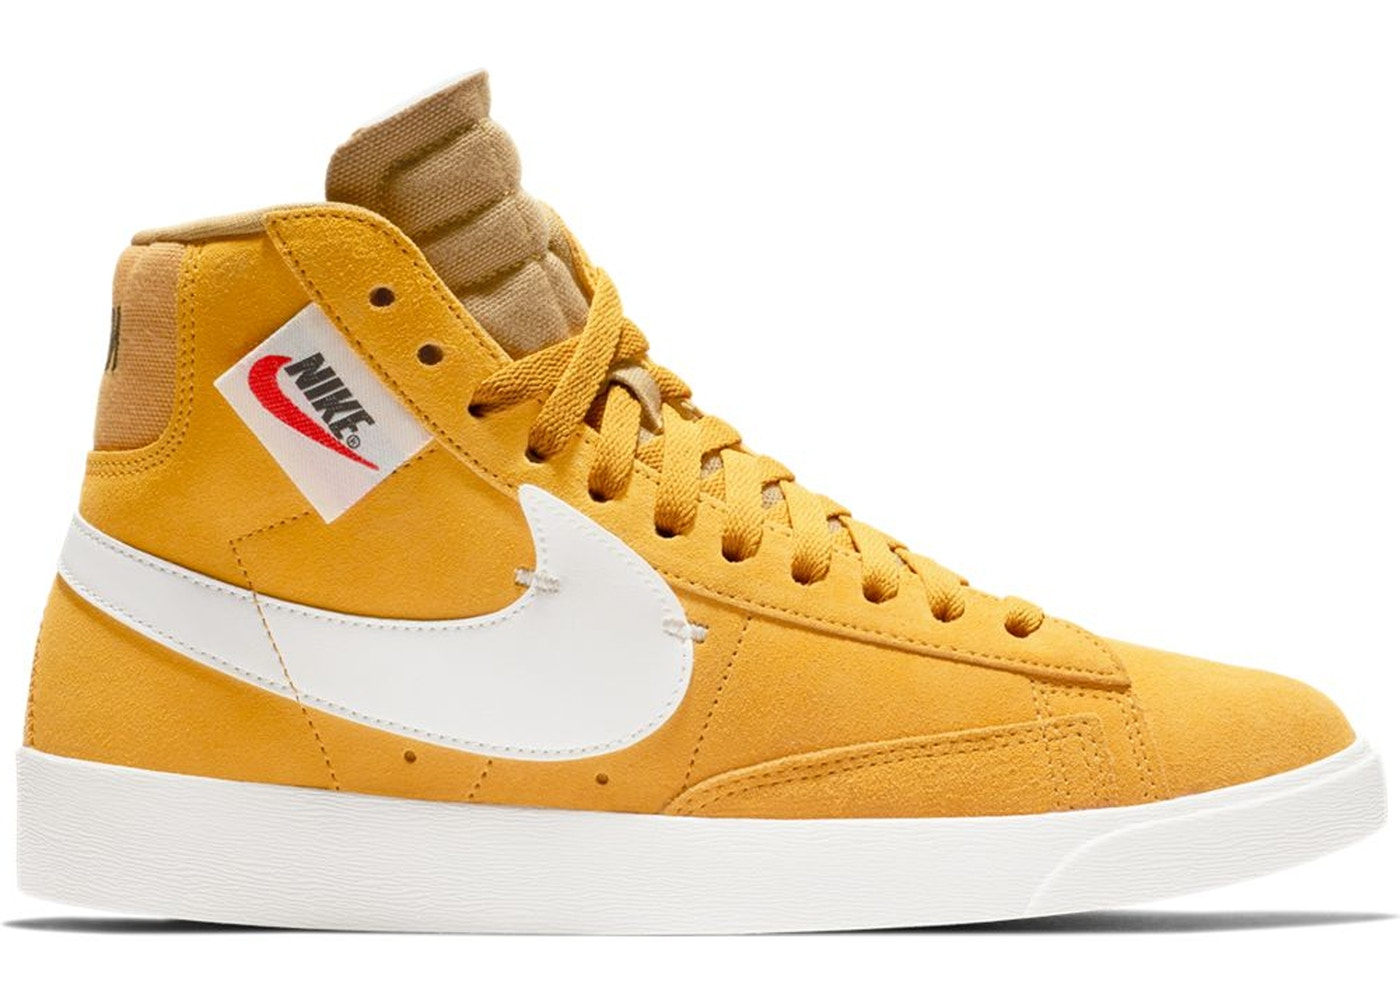 Perth Blackborough oasis pérdida  Nike Blazer Mid Rebel Yellow Ochre (W) - BQ4022-700